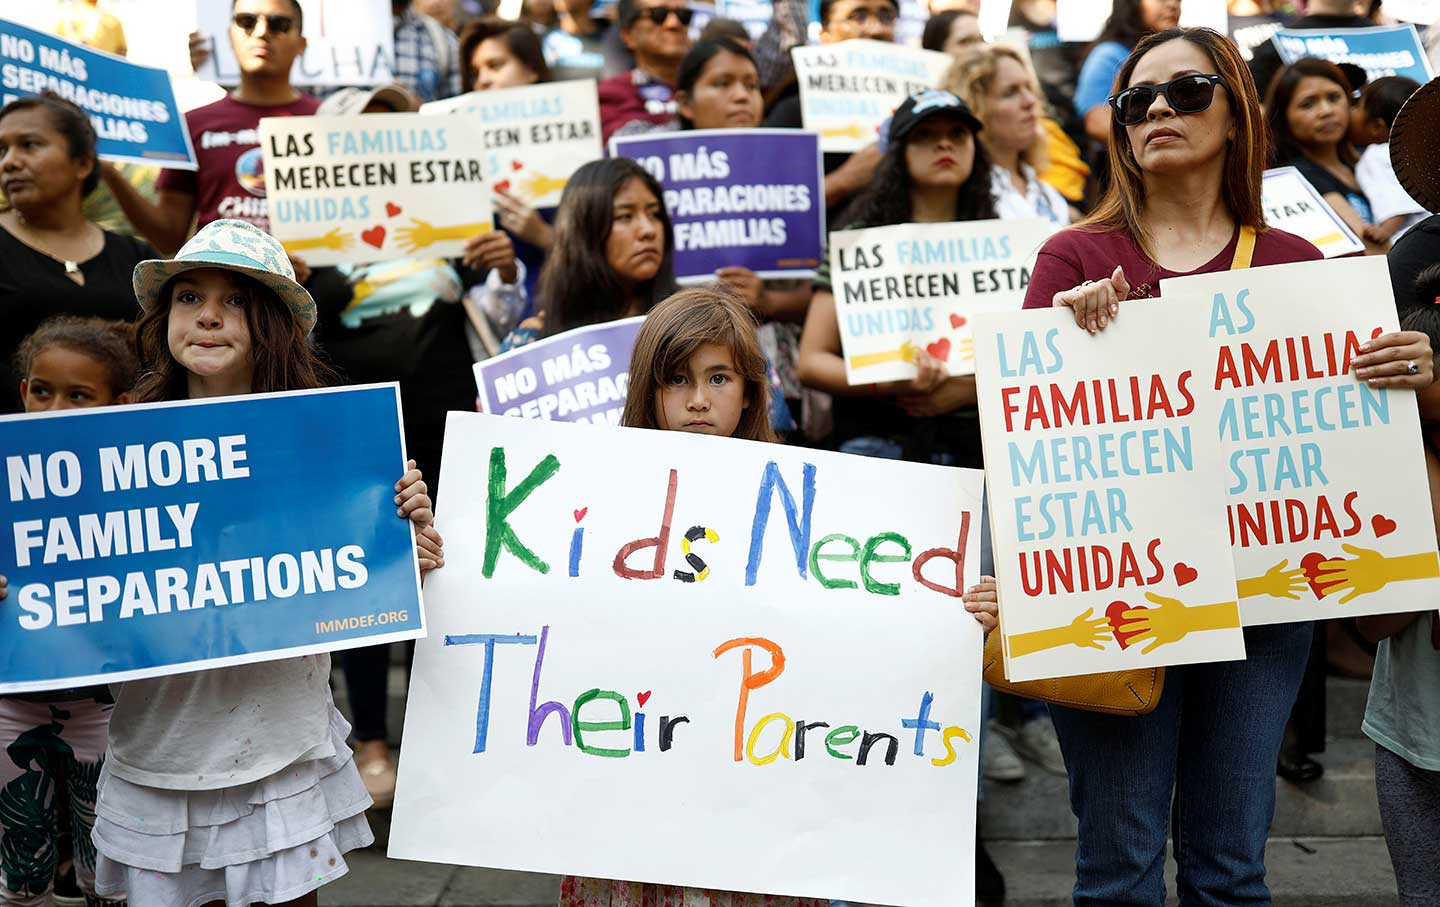 protest against separated immigrant families